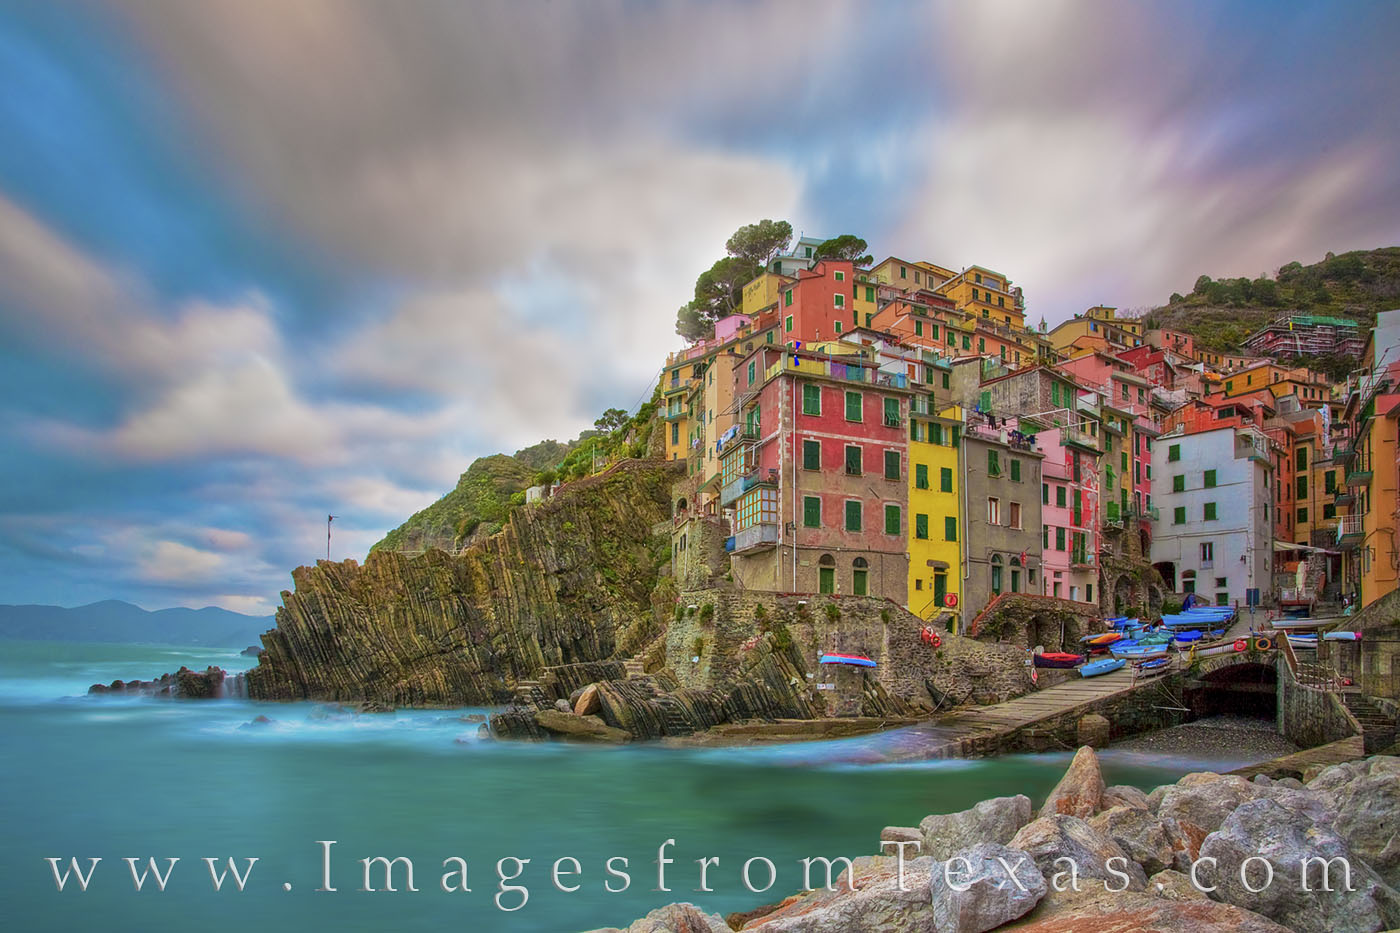 cinque terre, italy, riomaggiore, coast, ligurian coast, italian riveria, 5 lands, hiking, morning, photo